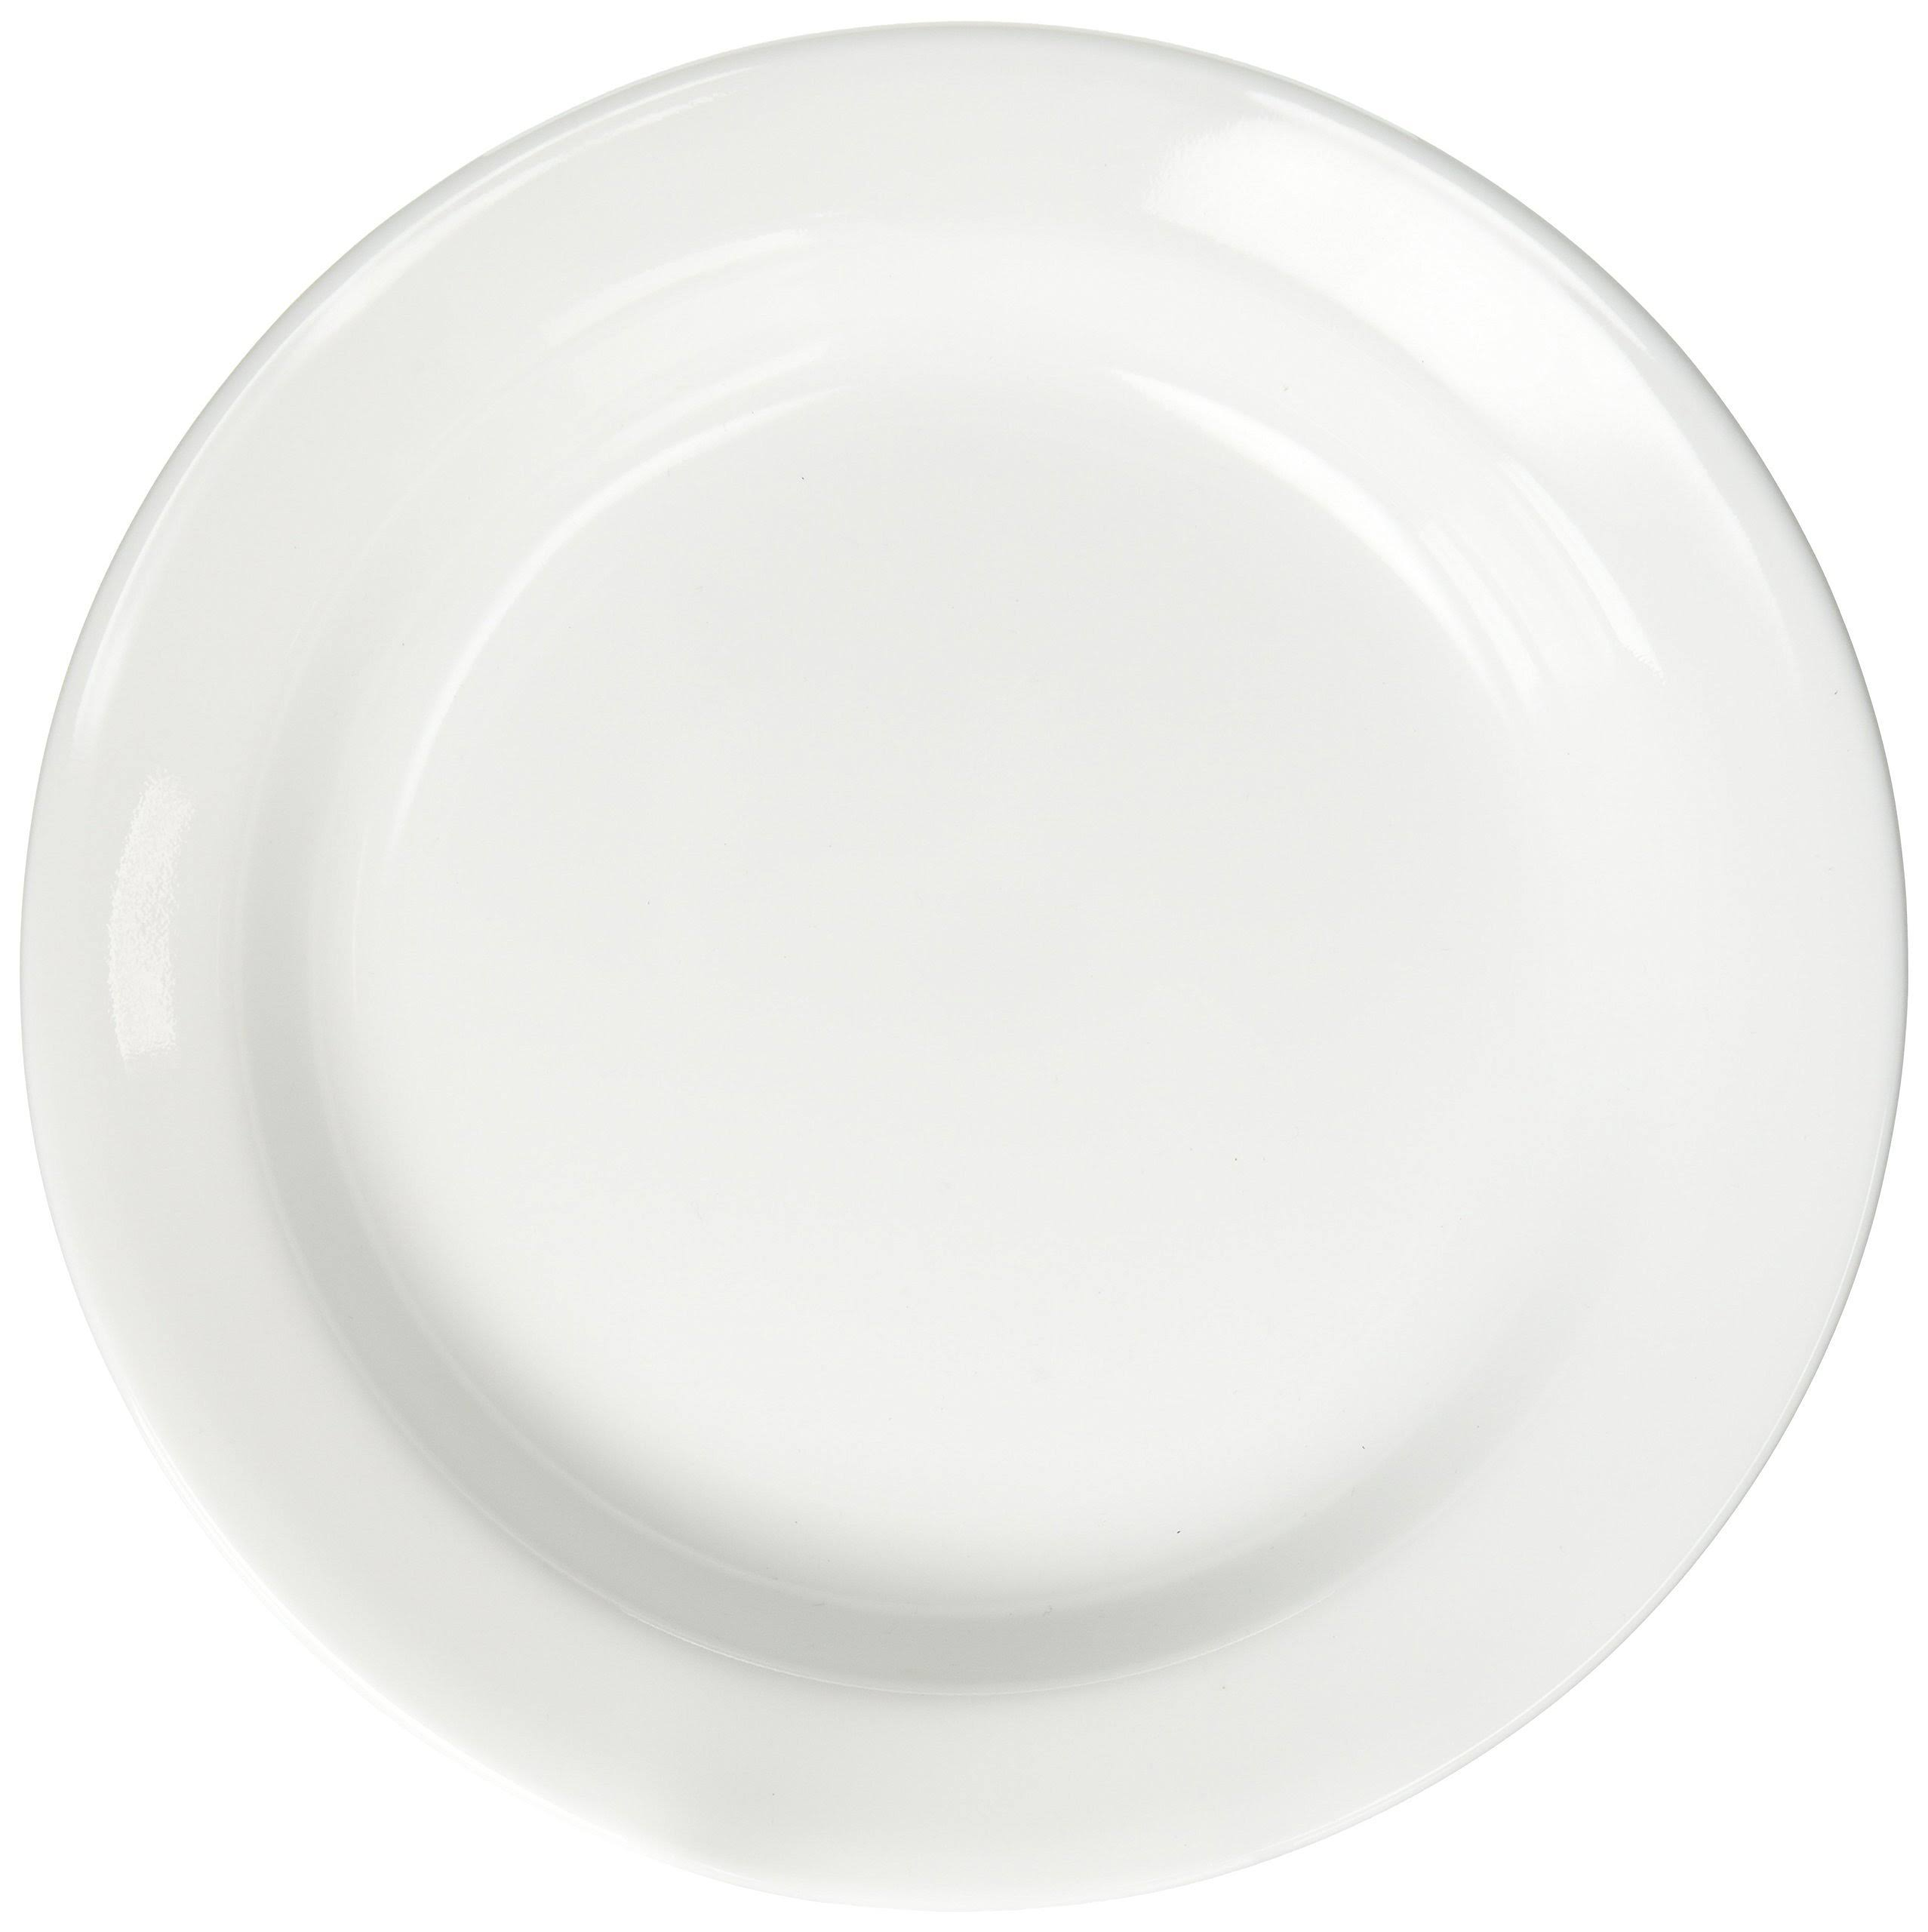 Corelle Livingware Rimmed Soup Bowl - Winter Frost White, 15oz